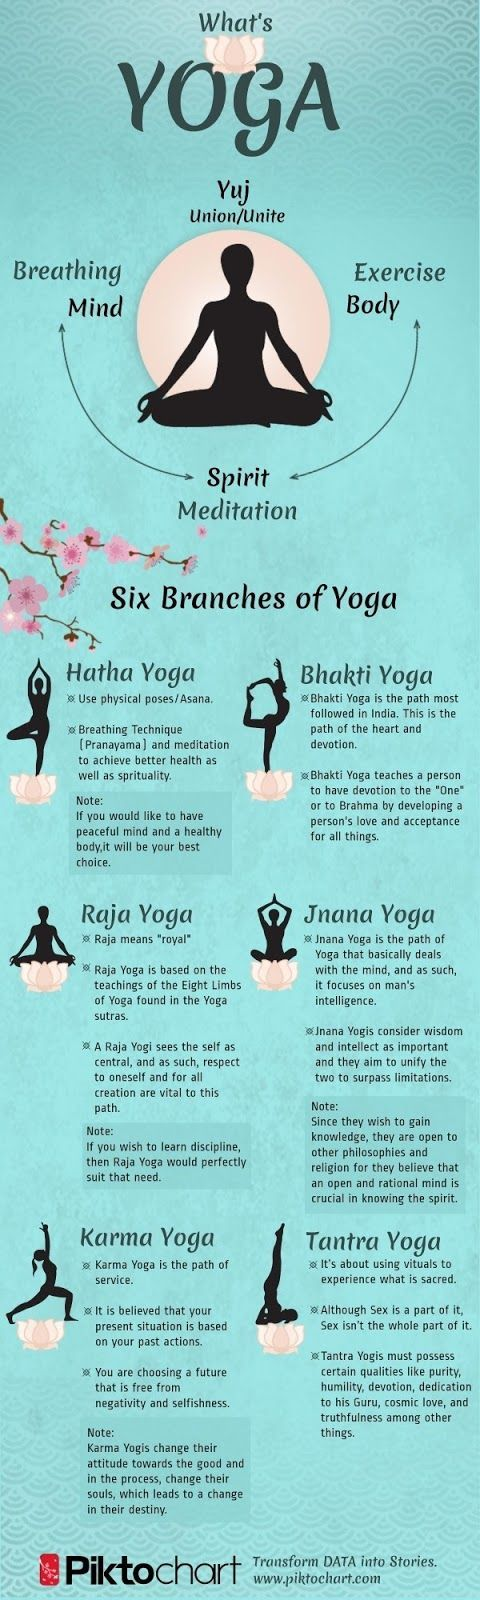 What is Yoga? #infographic